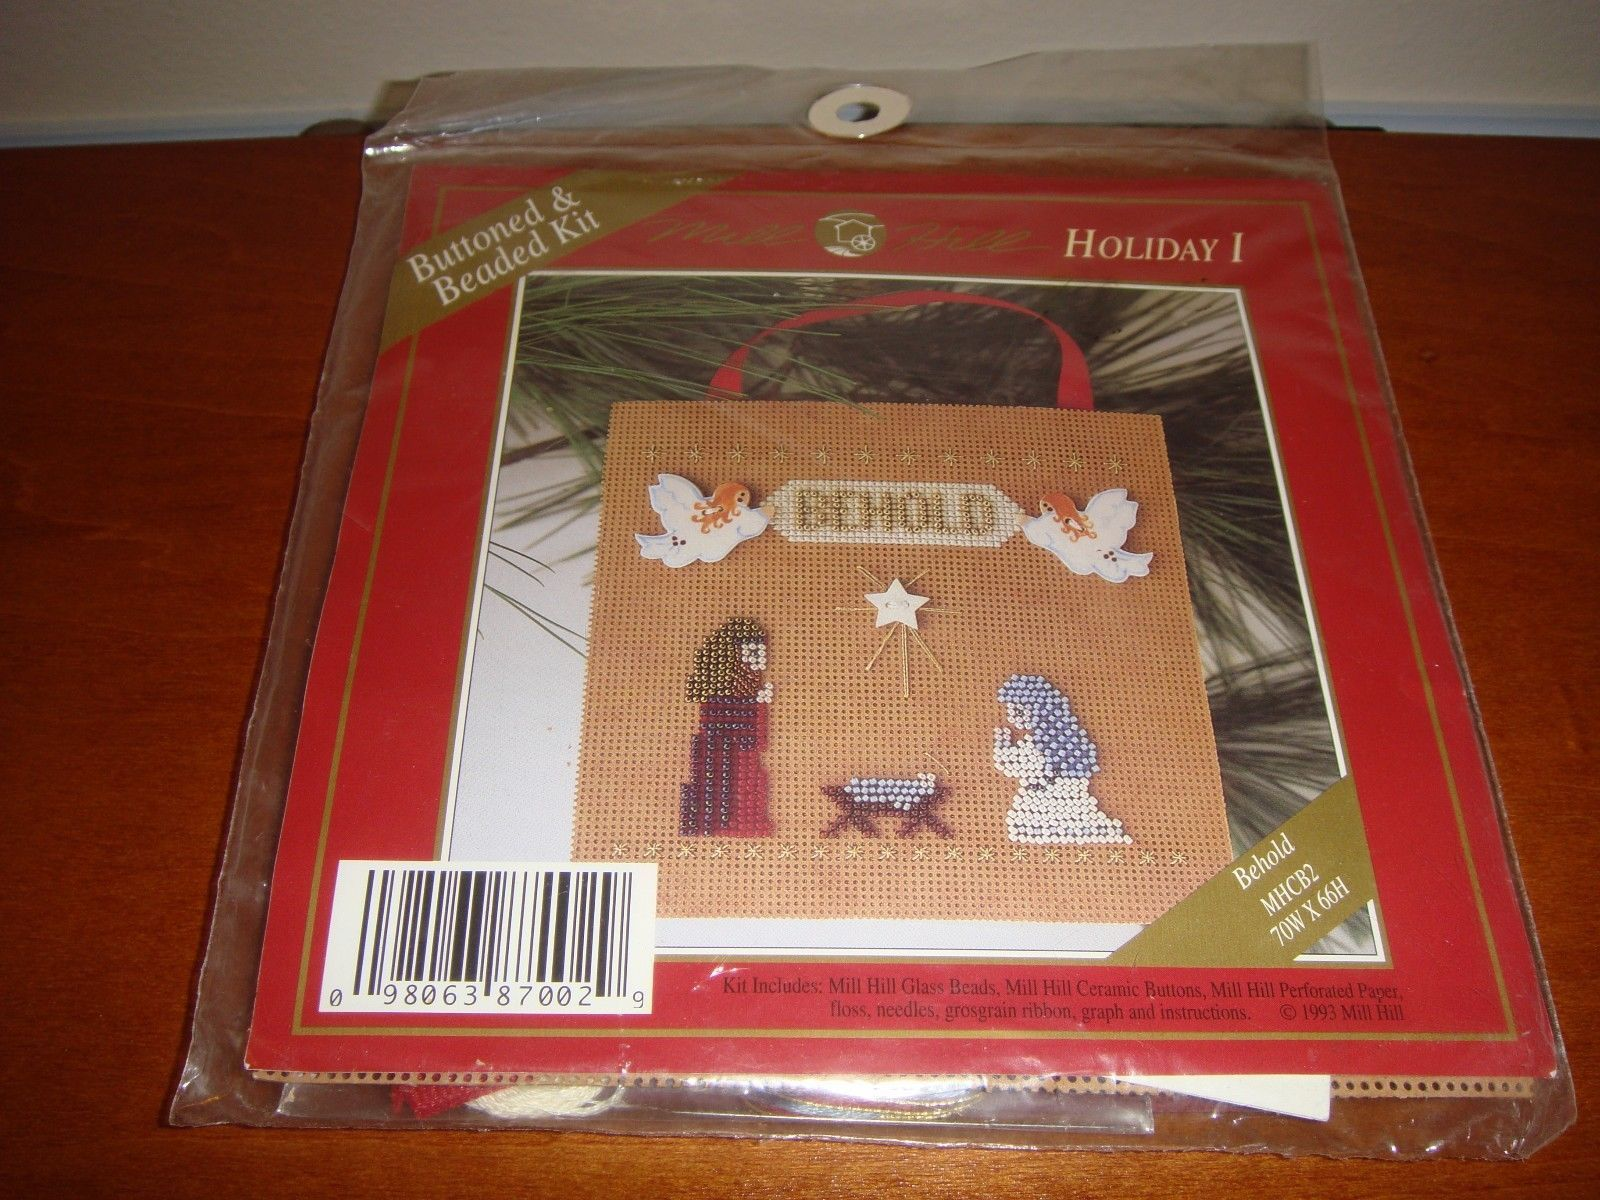 Mill Hill Behold Holiday I Buttoned & Beaded Cross Stitch Kit image 4